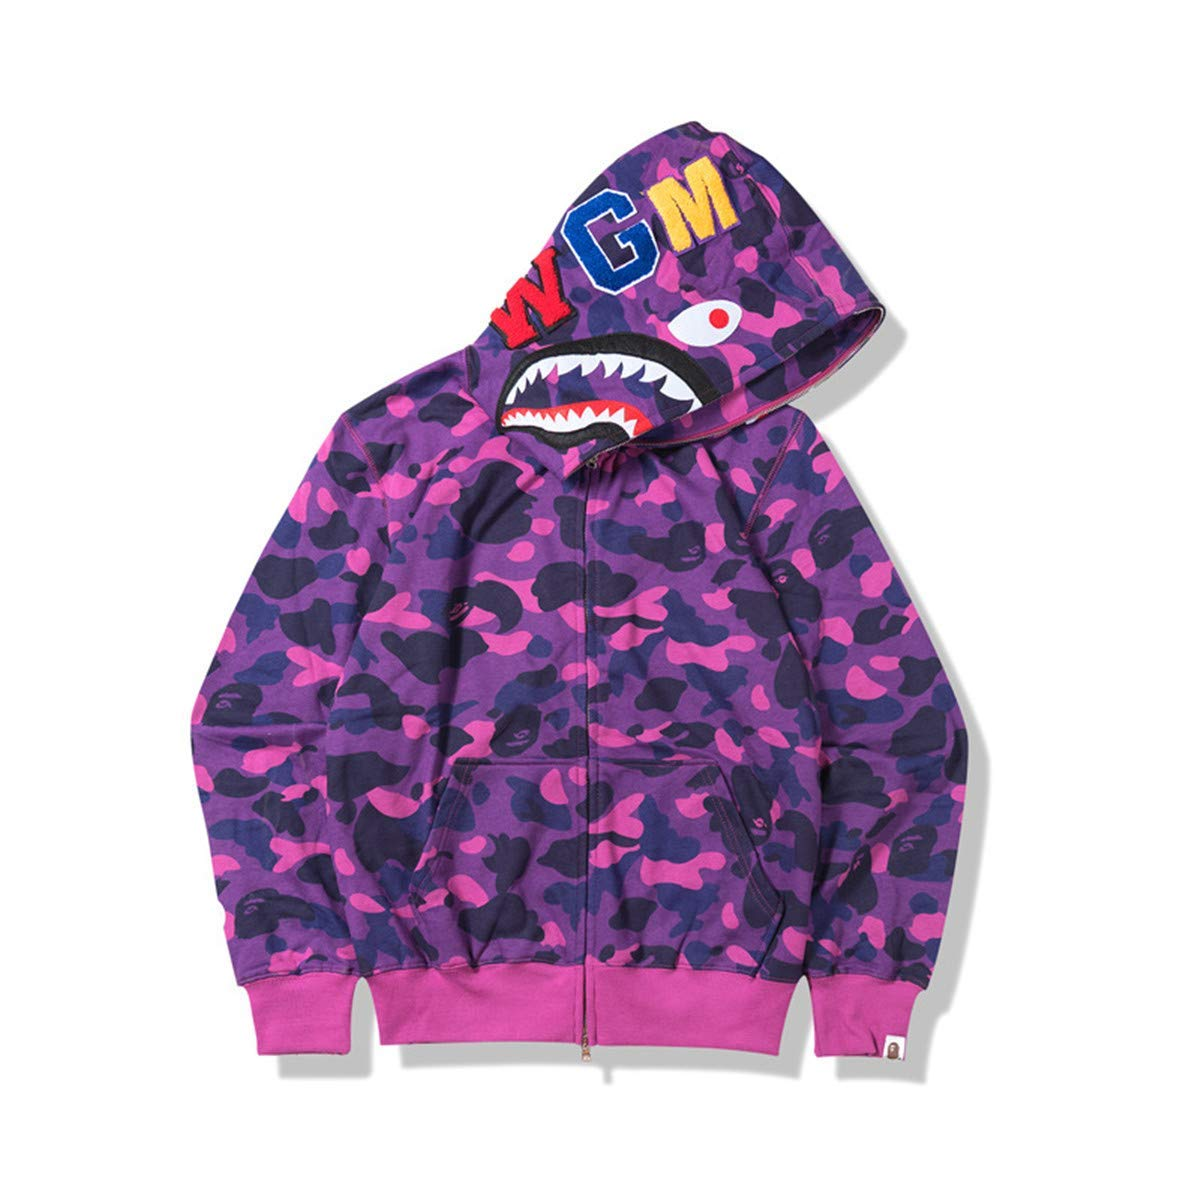 ea5123ed30a2 Amazon.com  Men s A Bathing Ape BAPE Shark Head Thin Coat Full Zipper Camouflage  Jacket Hoodie  Clothing